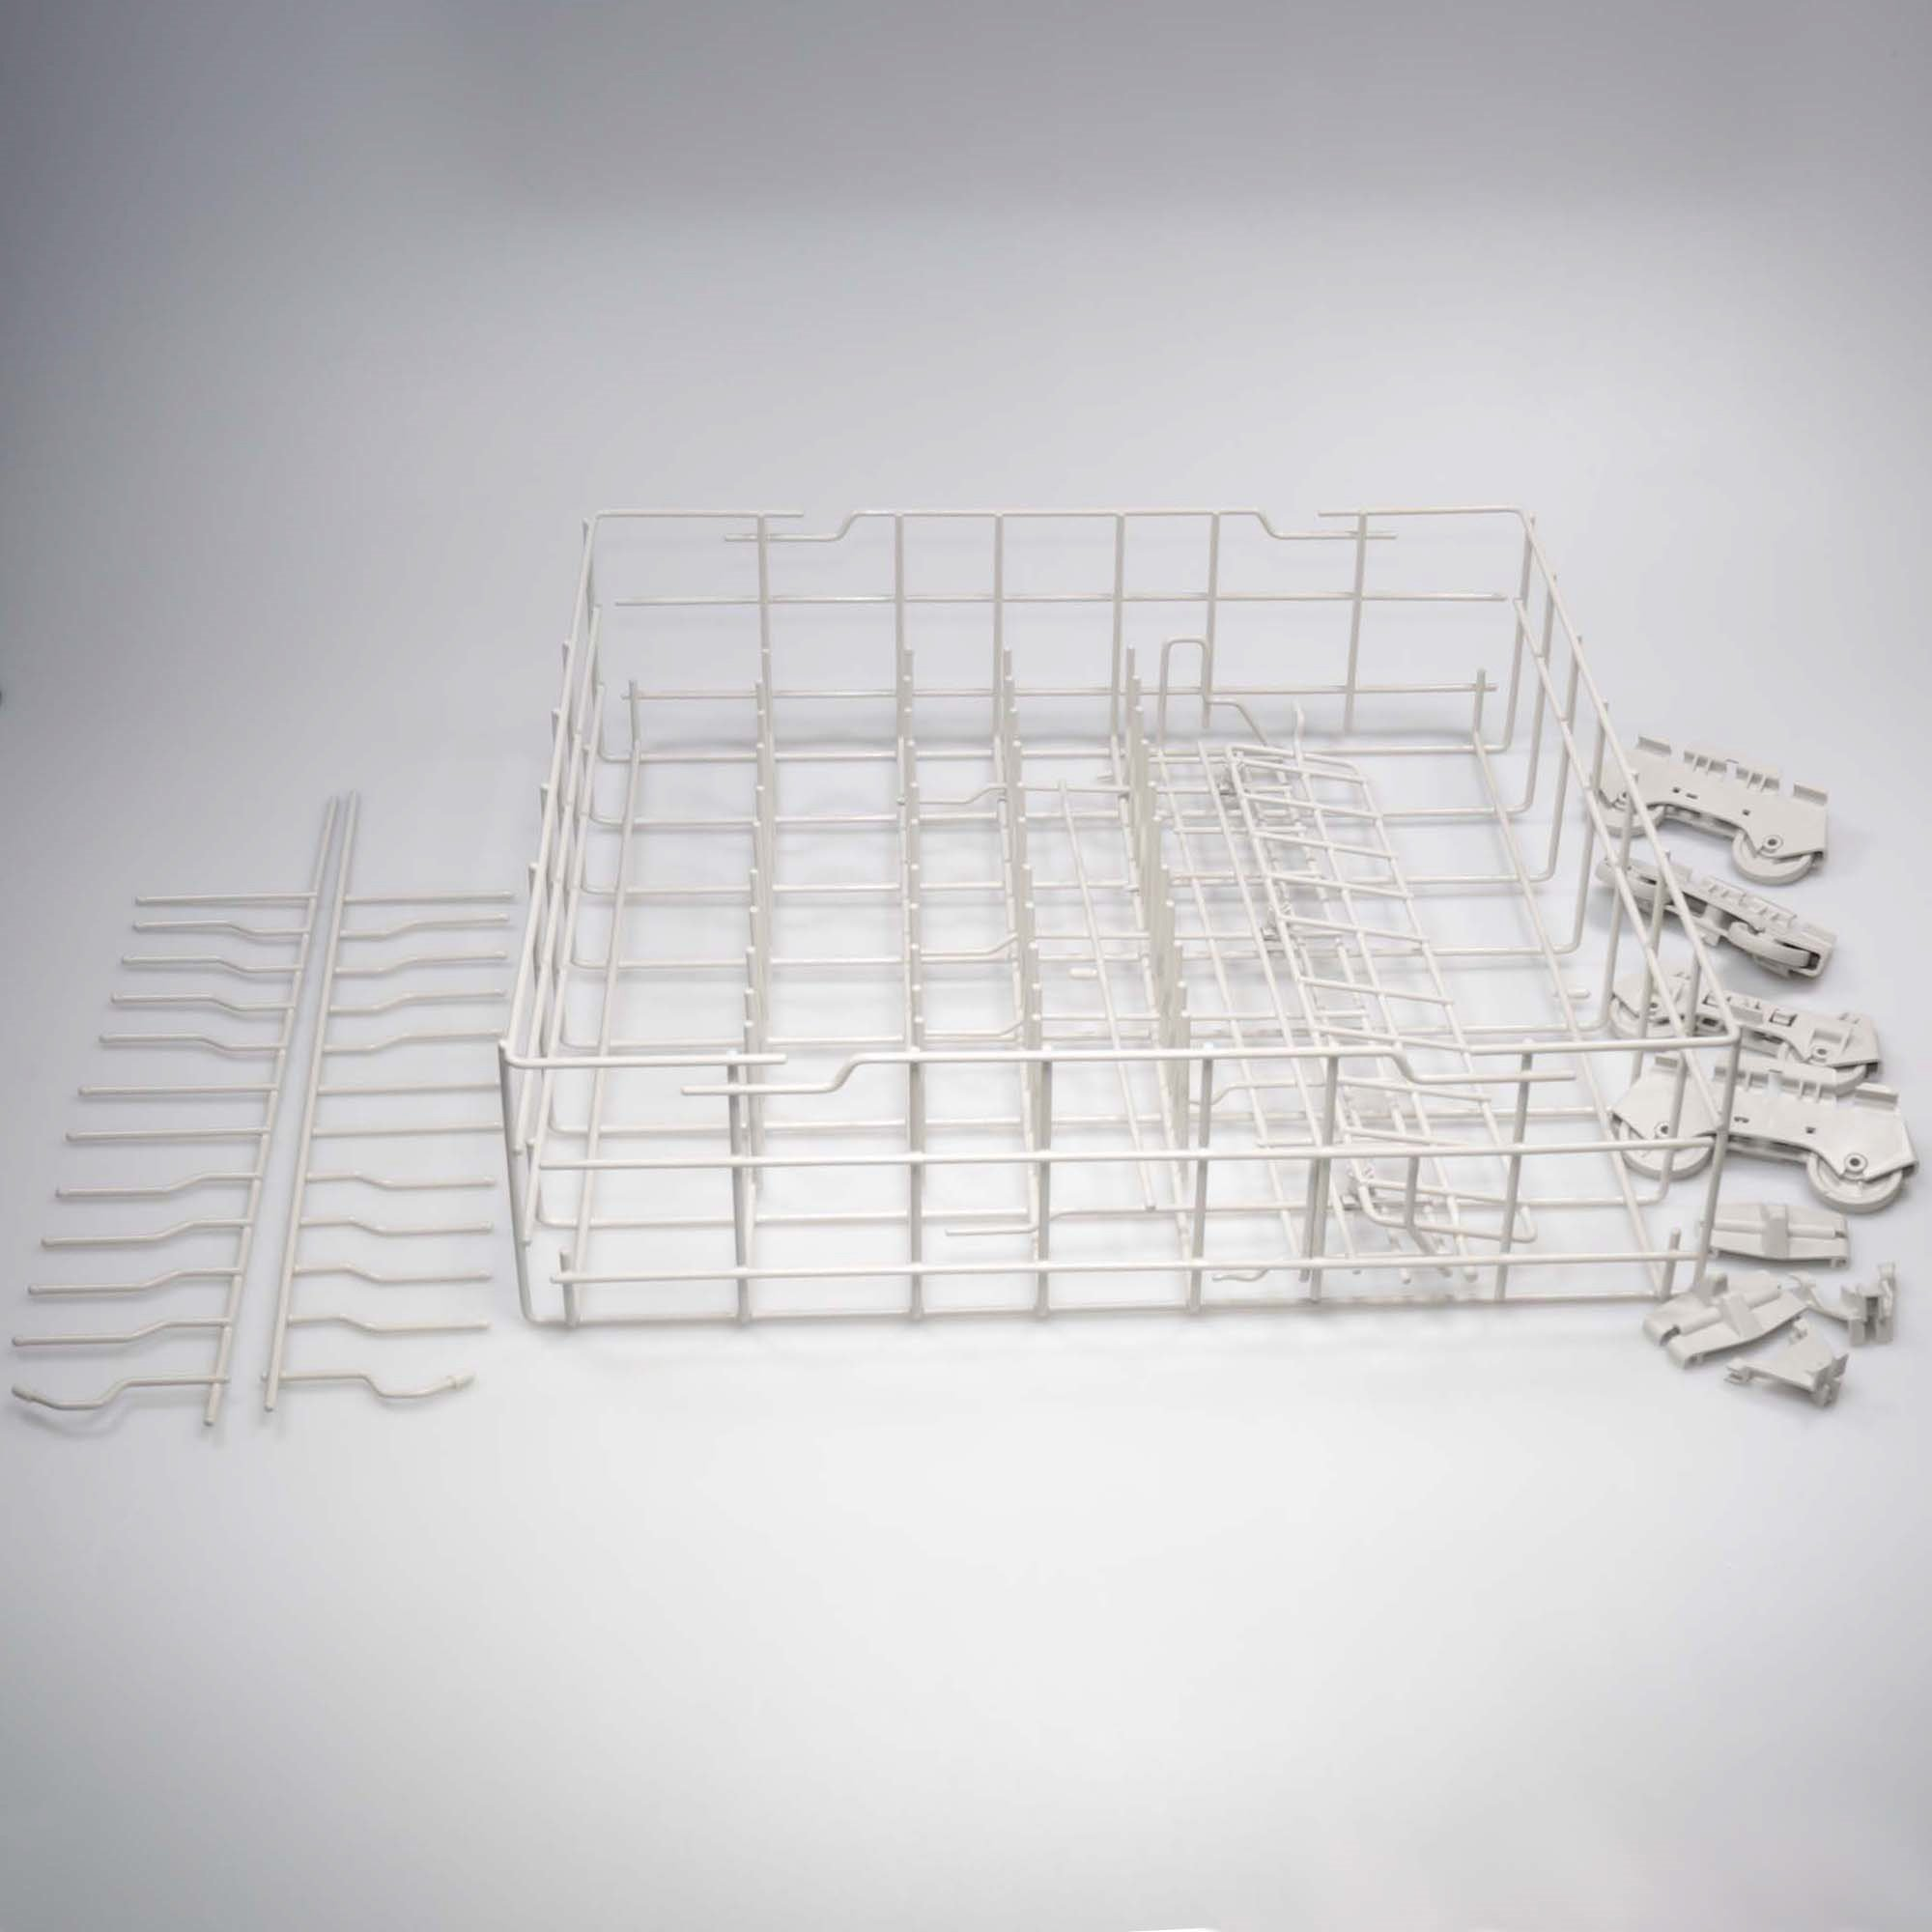 Whirlpool Part Number W10134647: DISHRACK